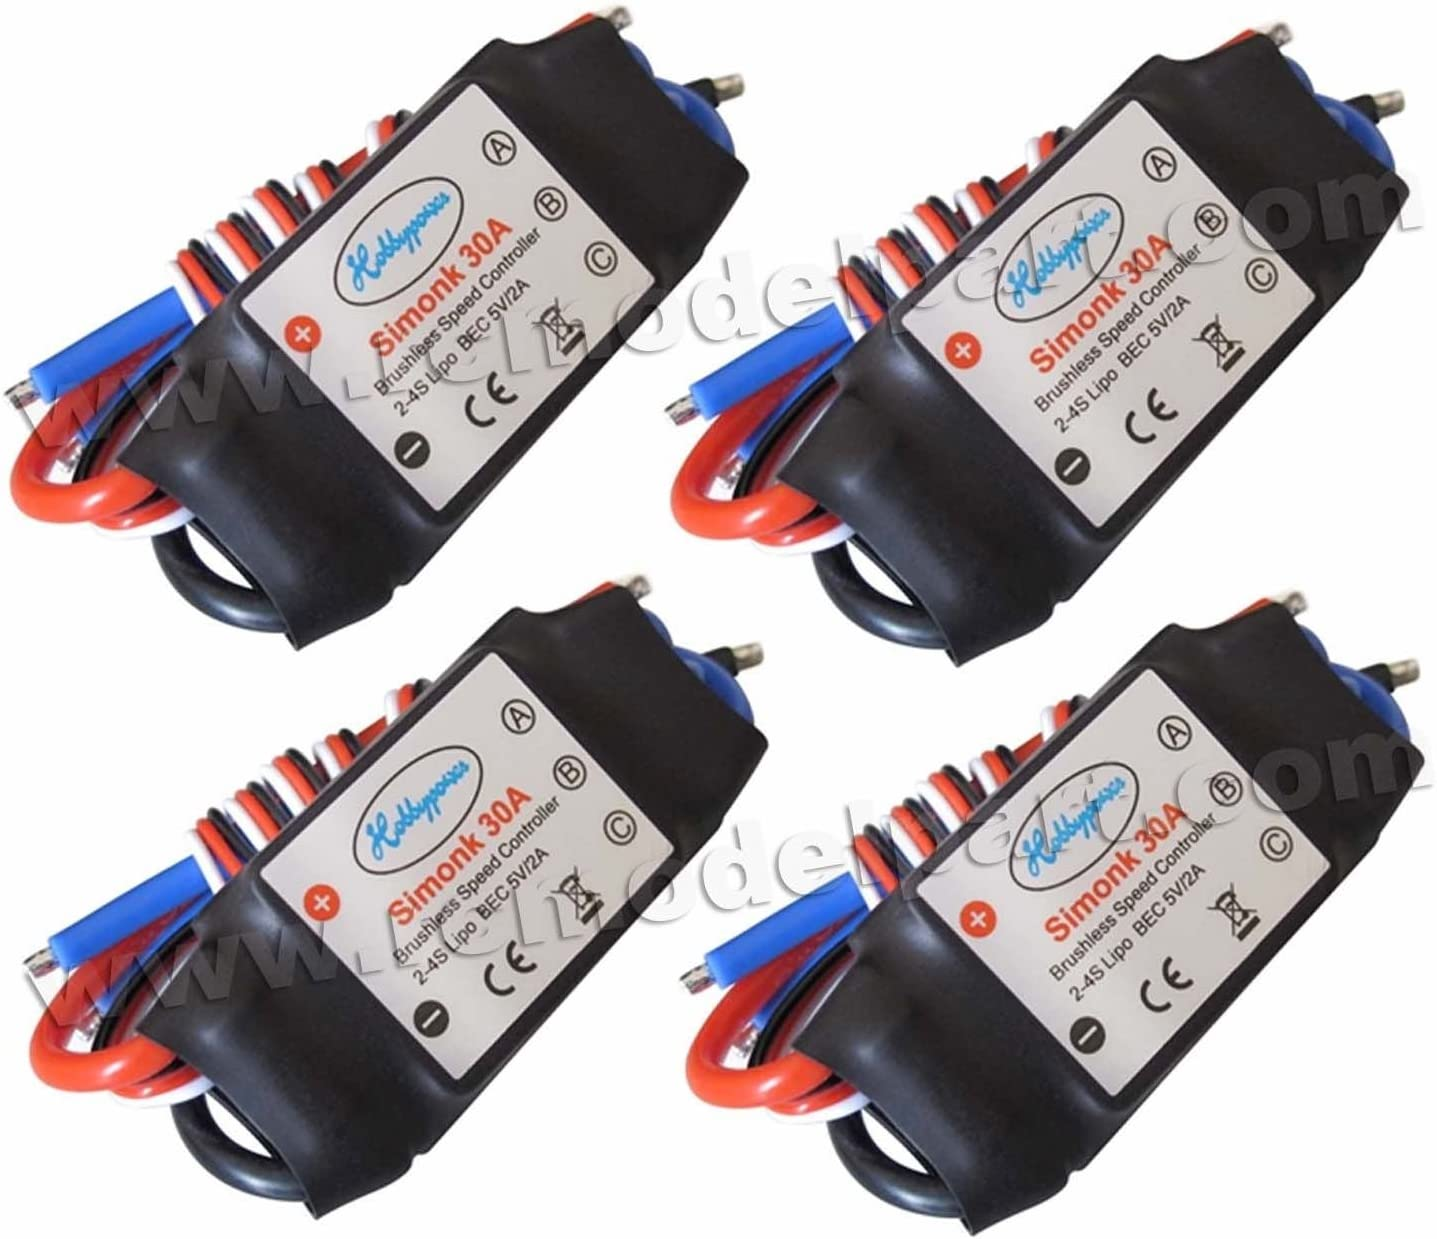 Hobbypower HP SimonK 30A ESC Brushless Speed Controller for Multicopter F450 F550 X525(Pack of 4 pcs)